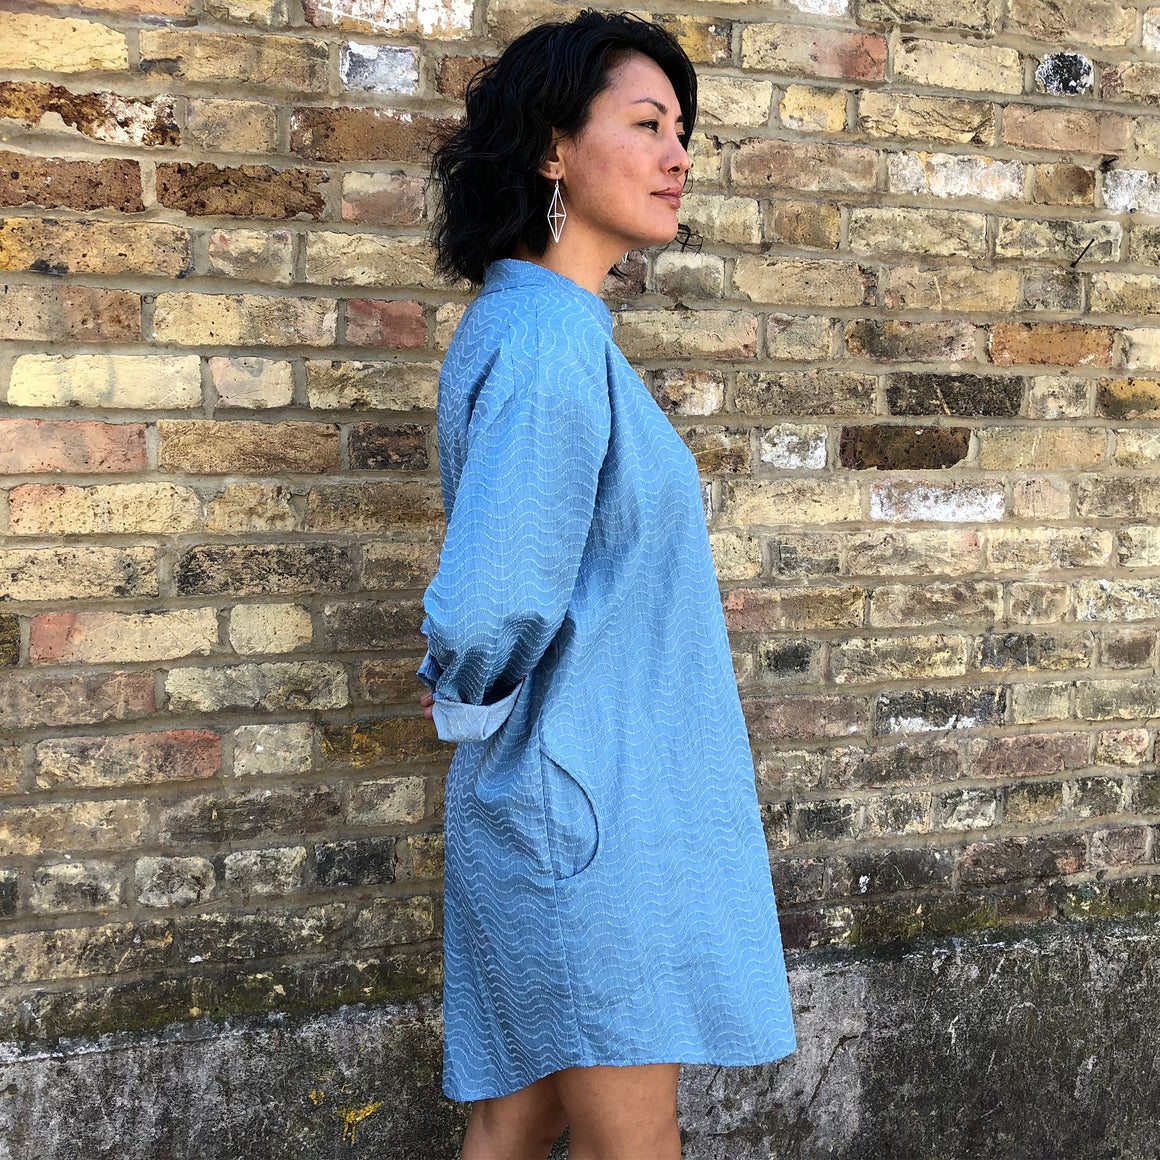 Mero Retro Fair Trade Oversized Relaxed Shirt Dress / Tunic with Mandarin Collar - Front